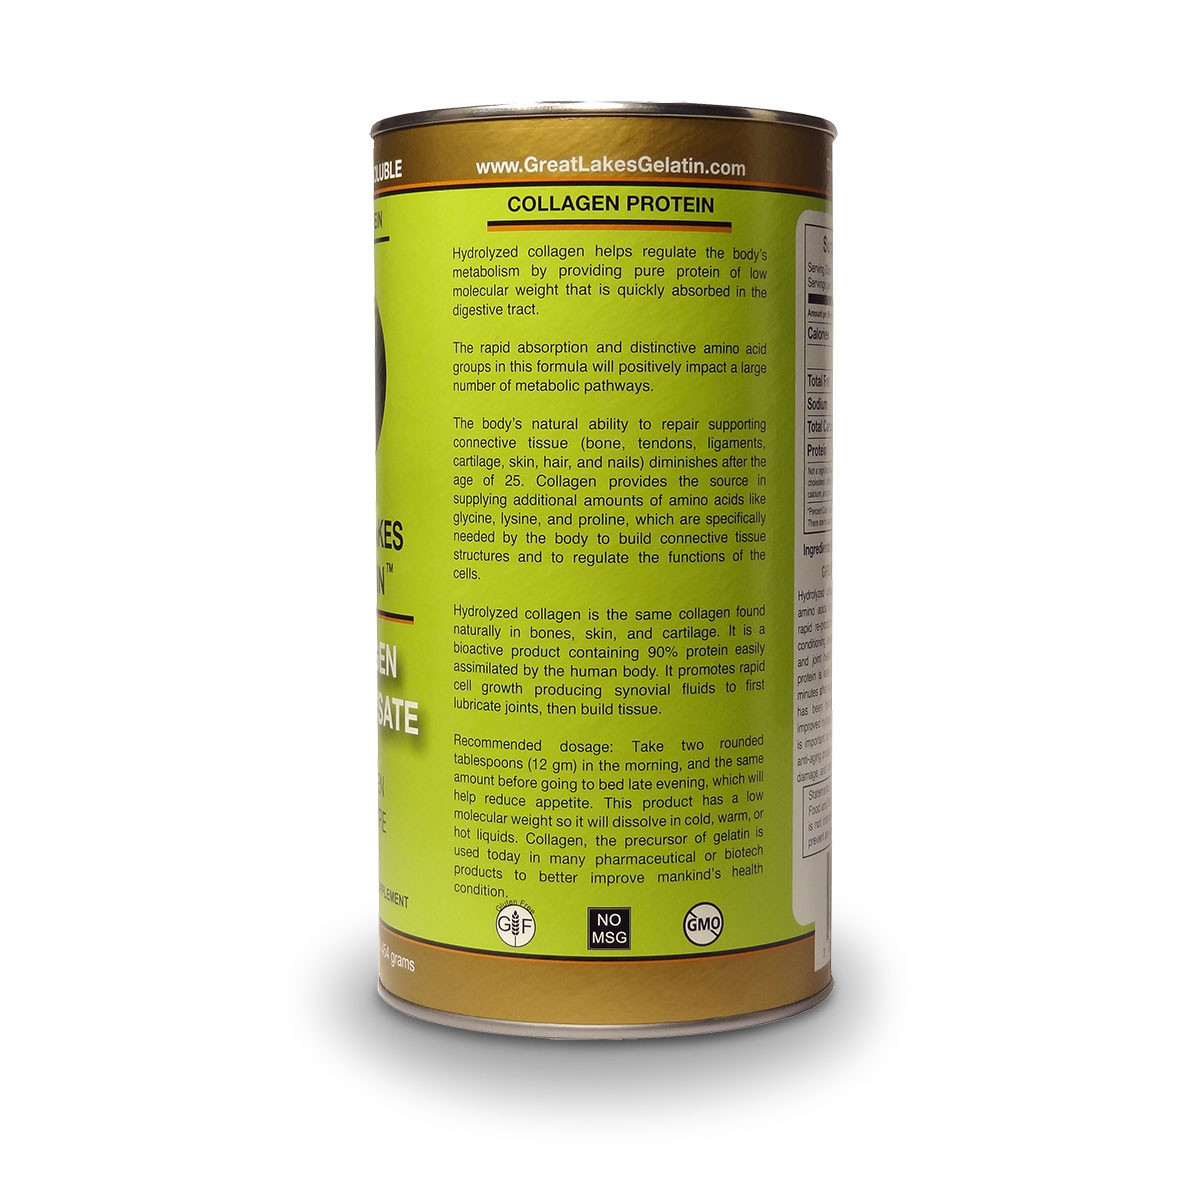 View of label side with dosage instruction and general information for Great Lakes Collagen Hydrolysate.